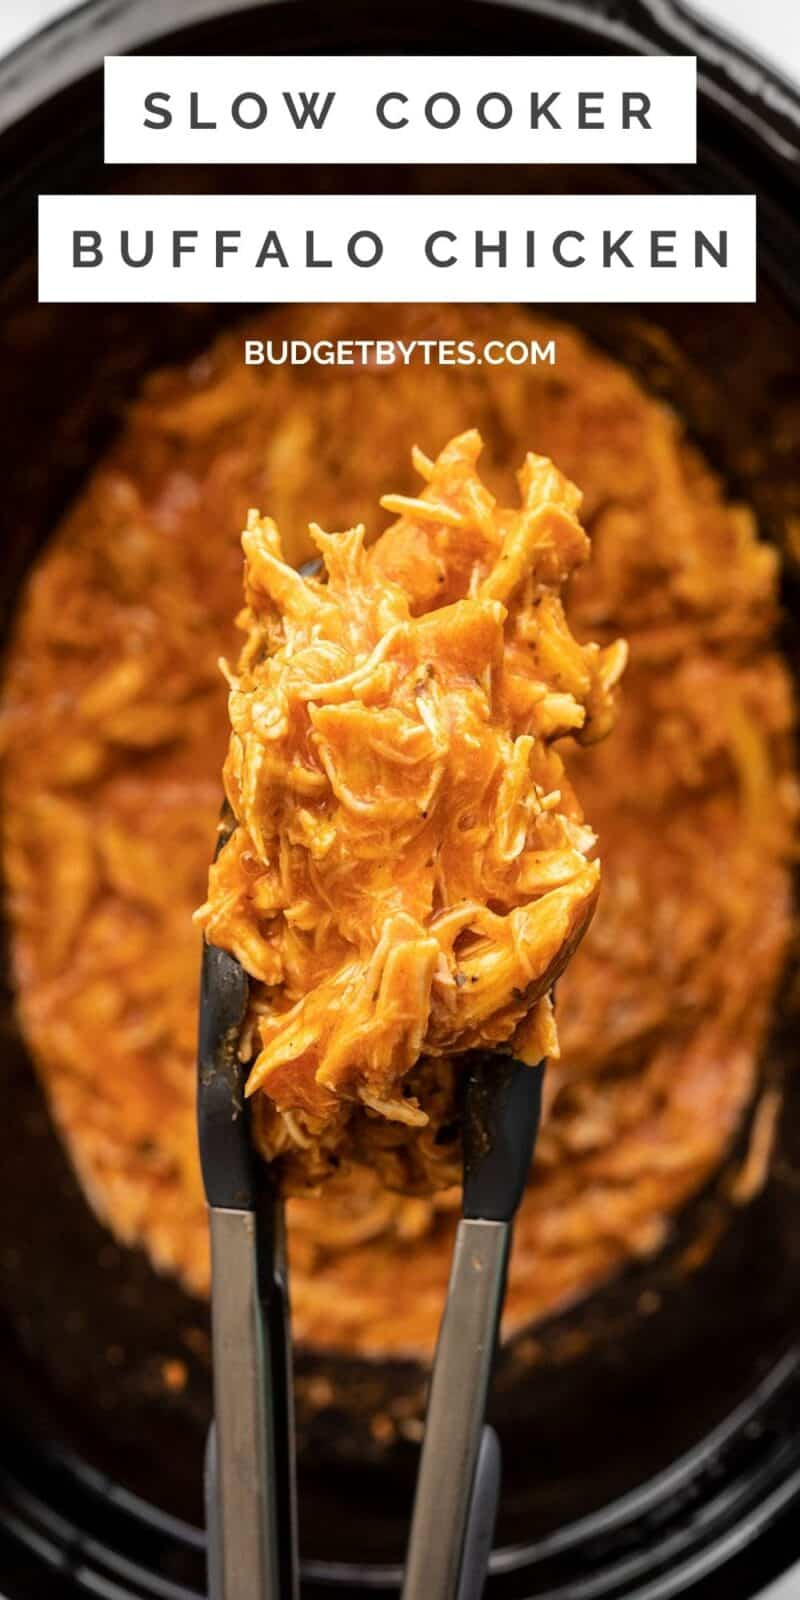 Slow cooker buffalo chicken in tongs over the slow cooker, title text at the top